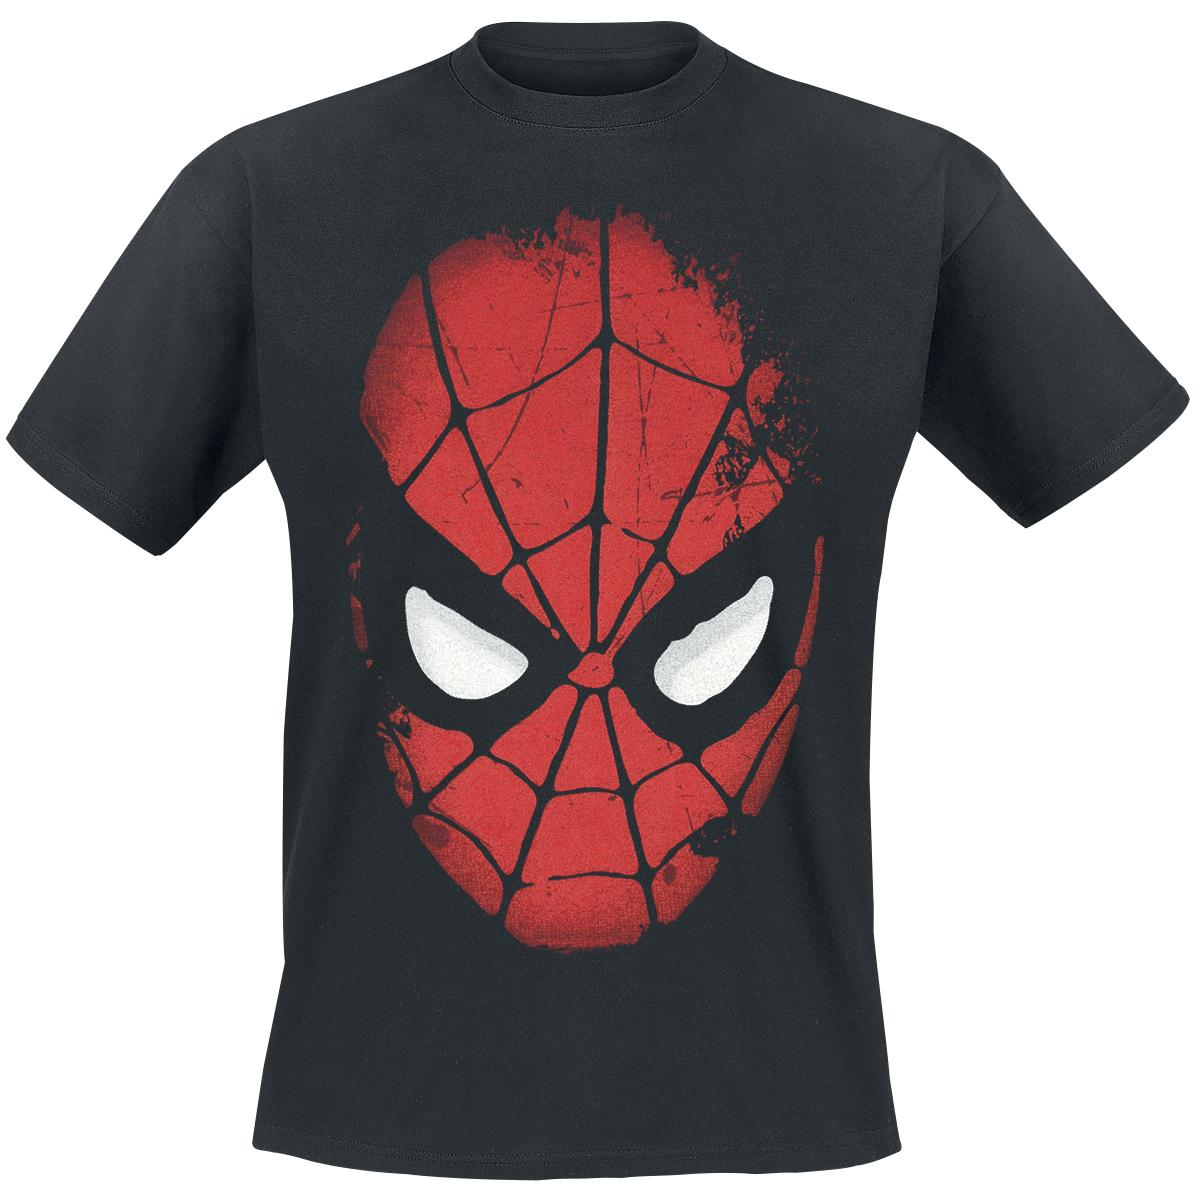 Big Face Spider Man T-shirt Design tee